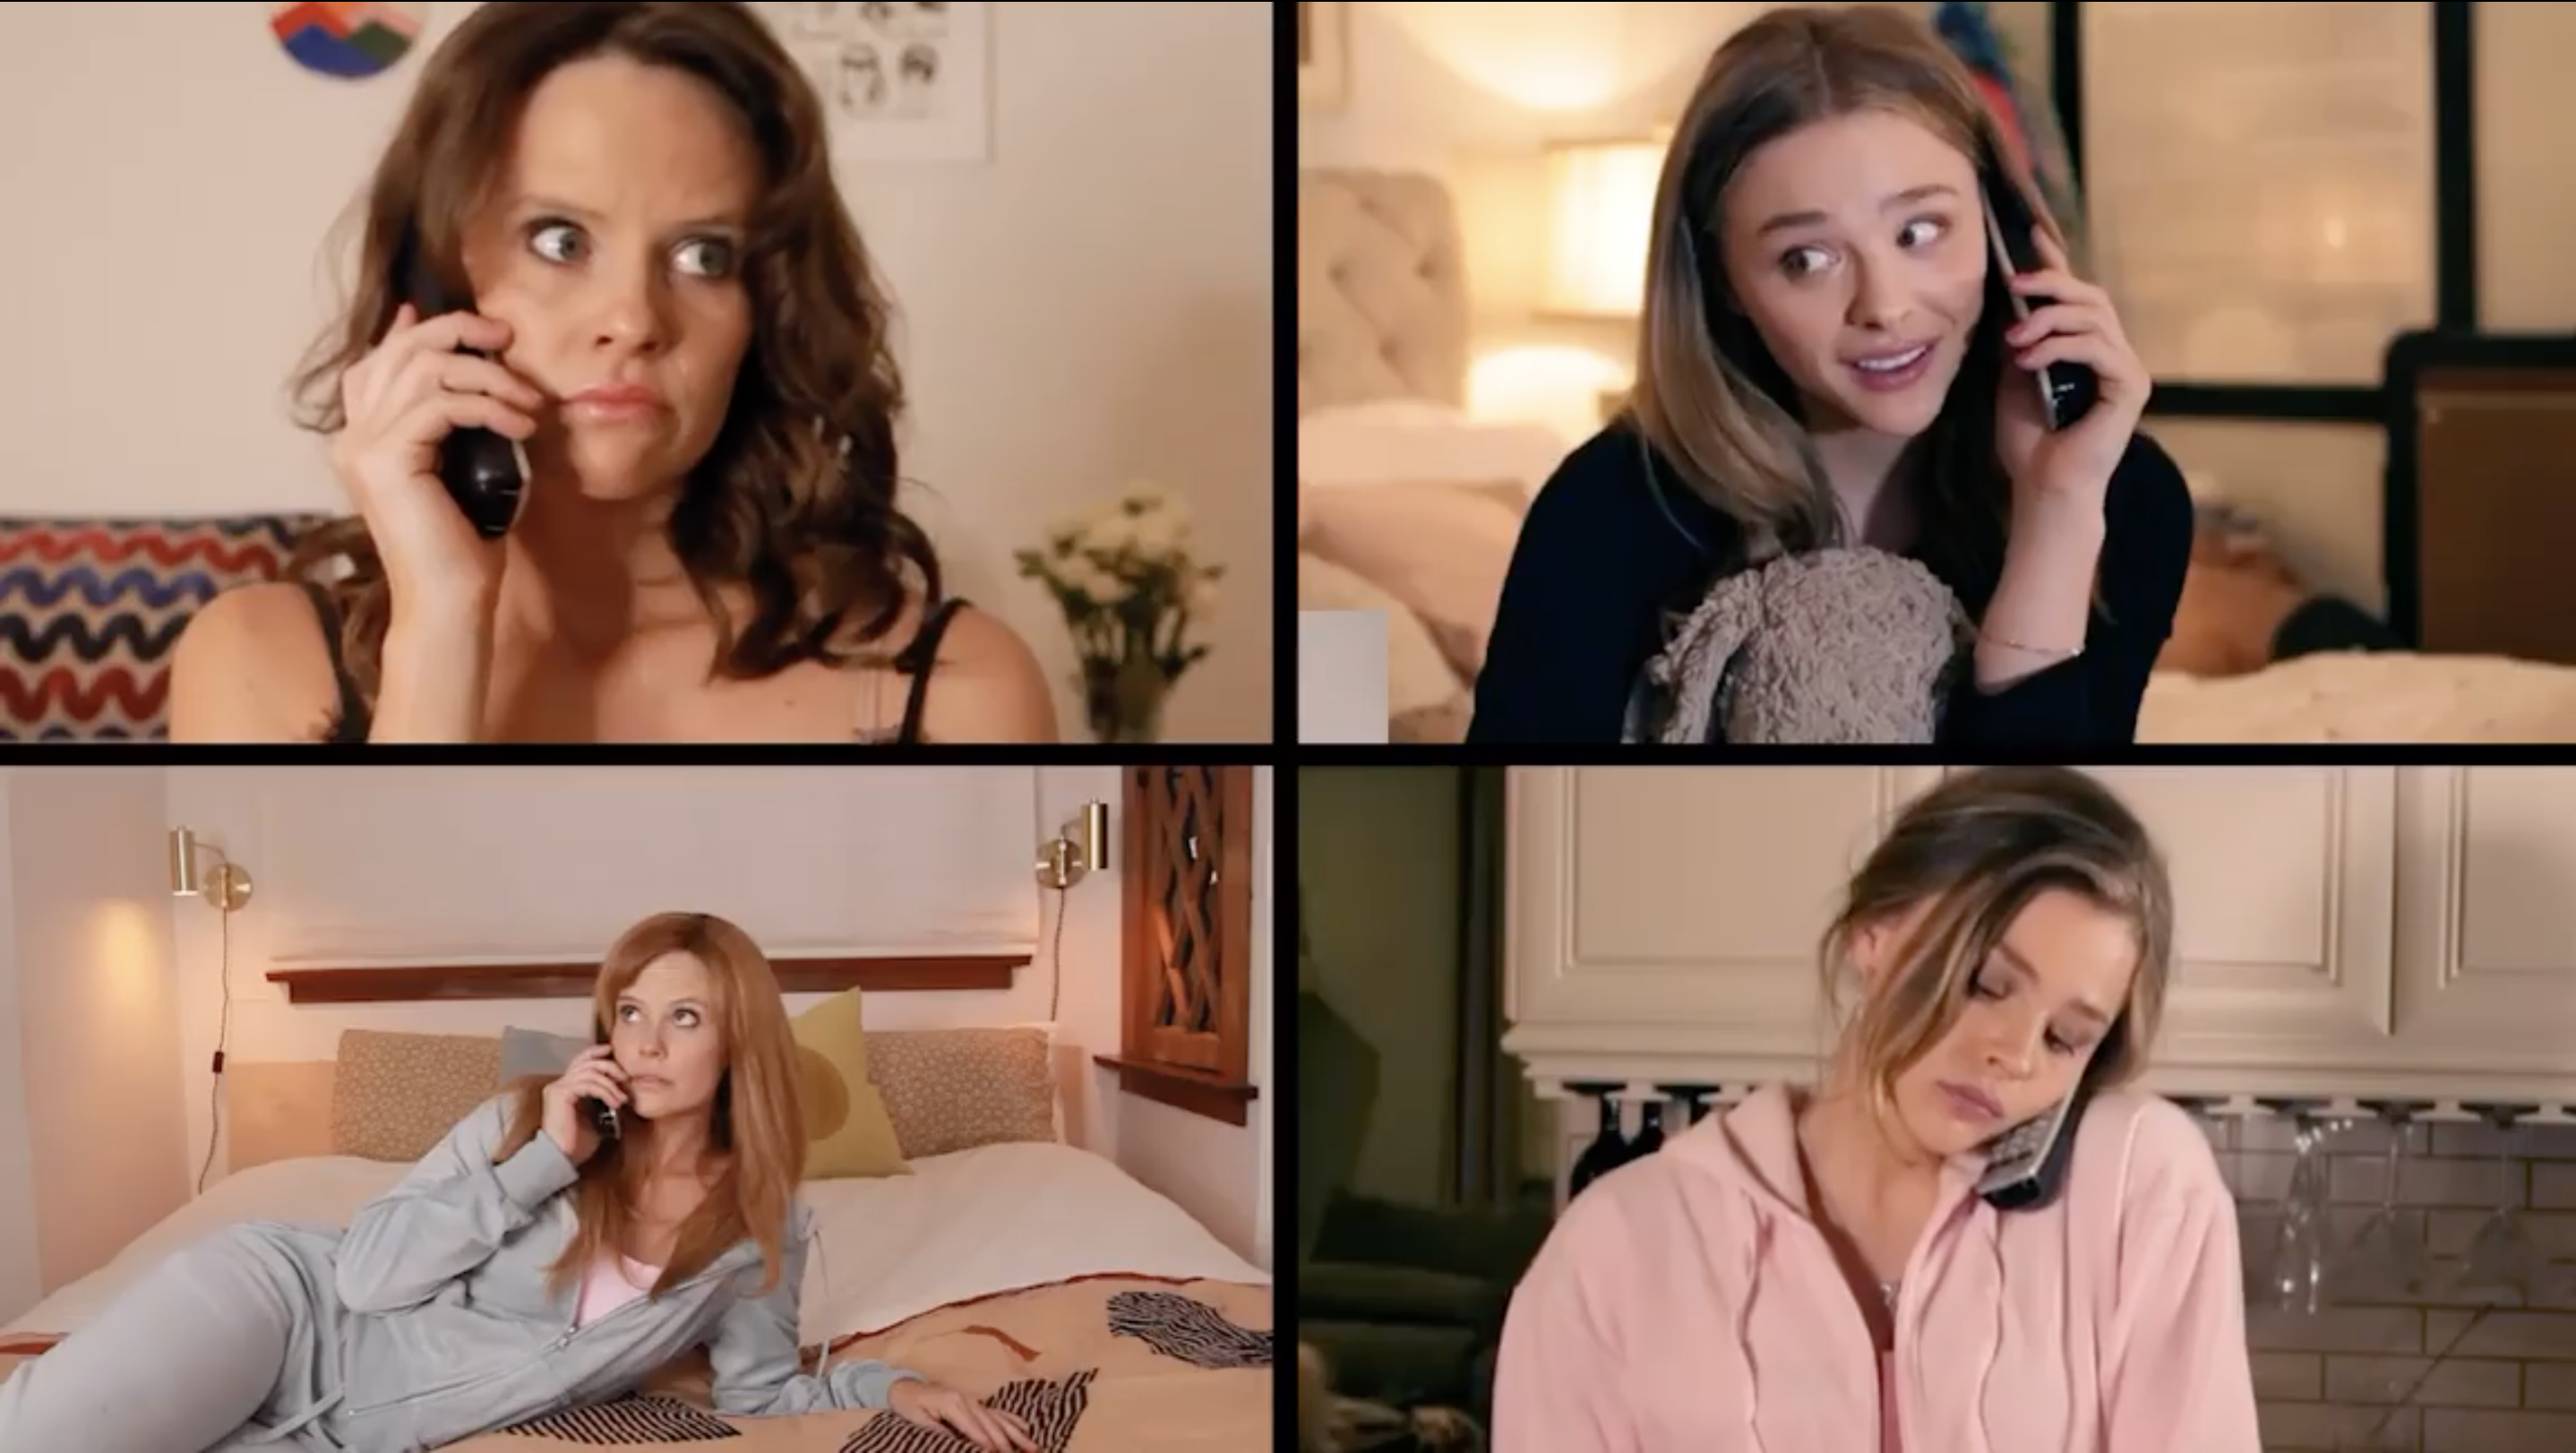 chloe grace moretz and sarah ramos mean girls reenactment